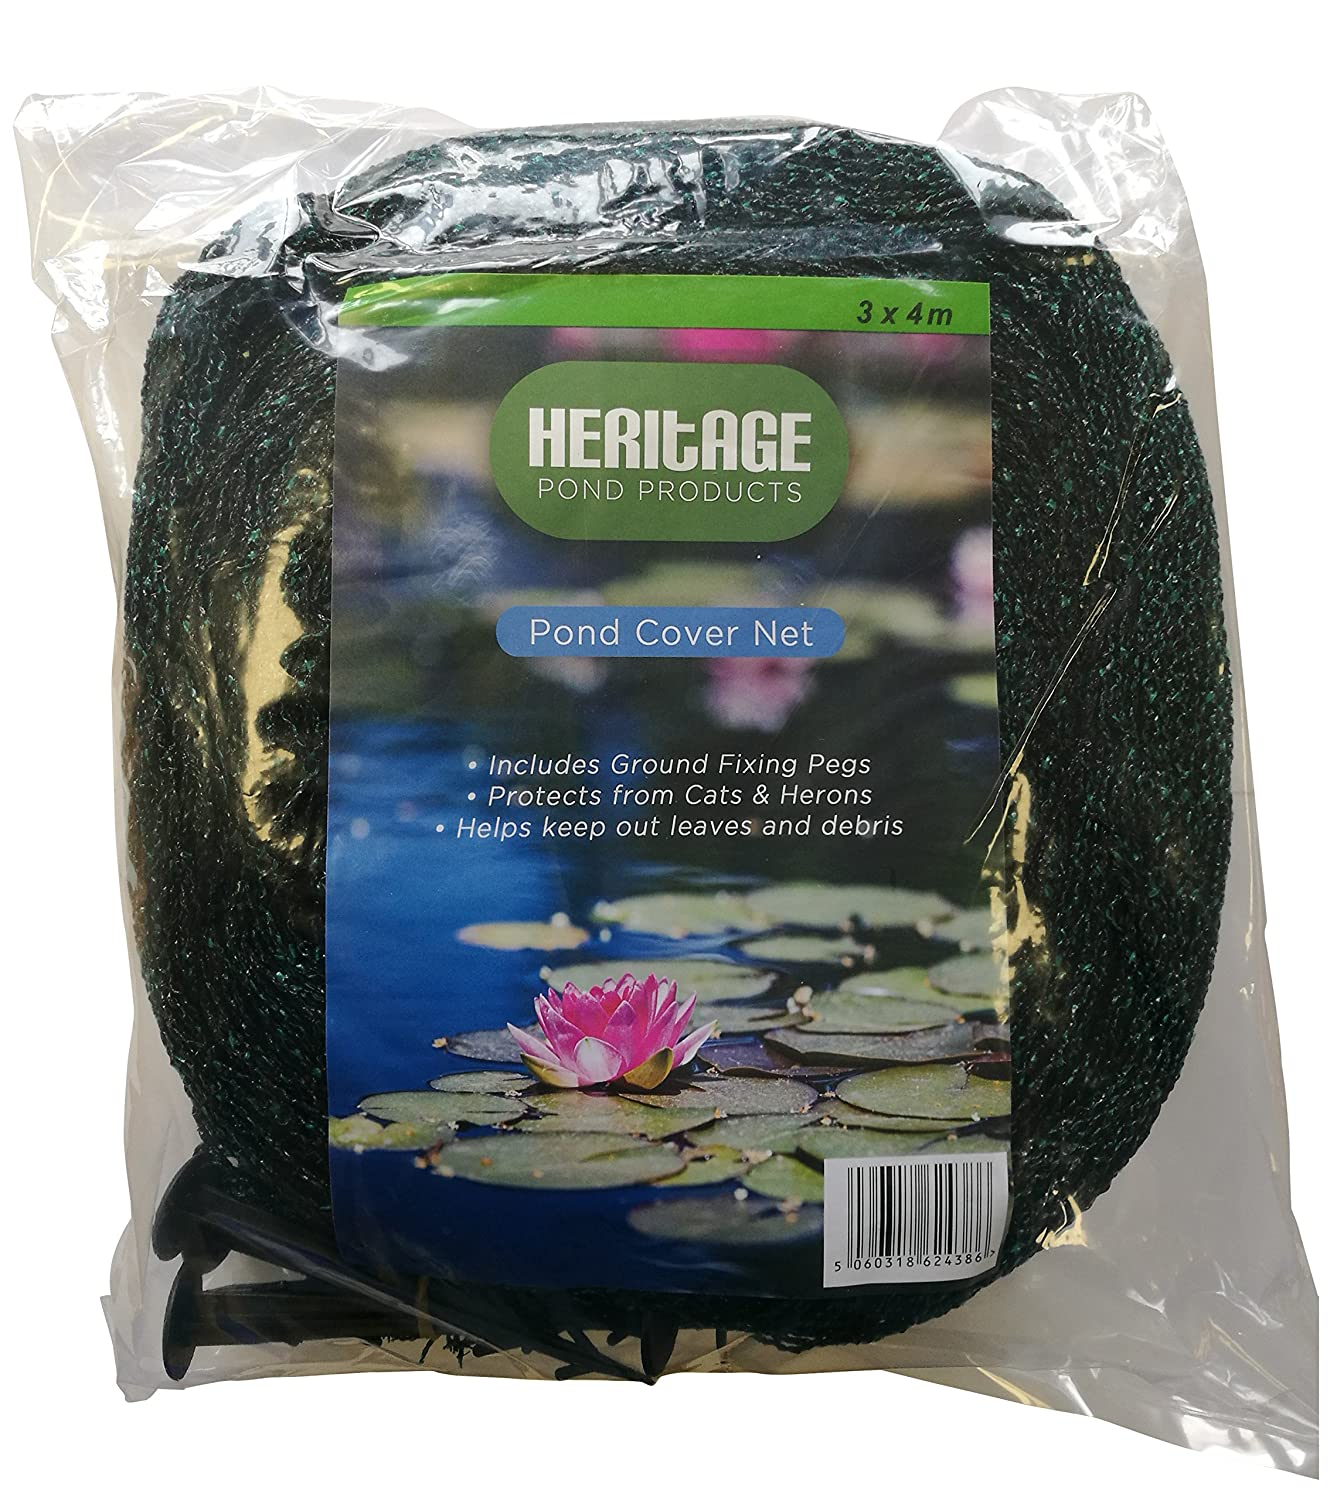 Heritage Pet Products Pond Cover Net Koi Fish Pond Netting Protects From Cats Leaves Herons (3m x 2m Pond net)